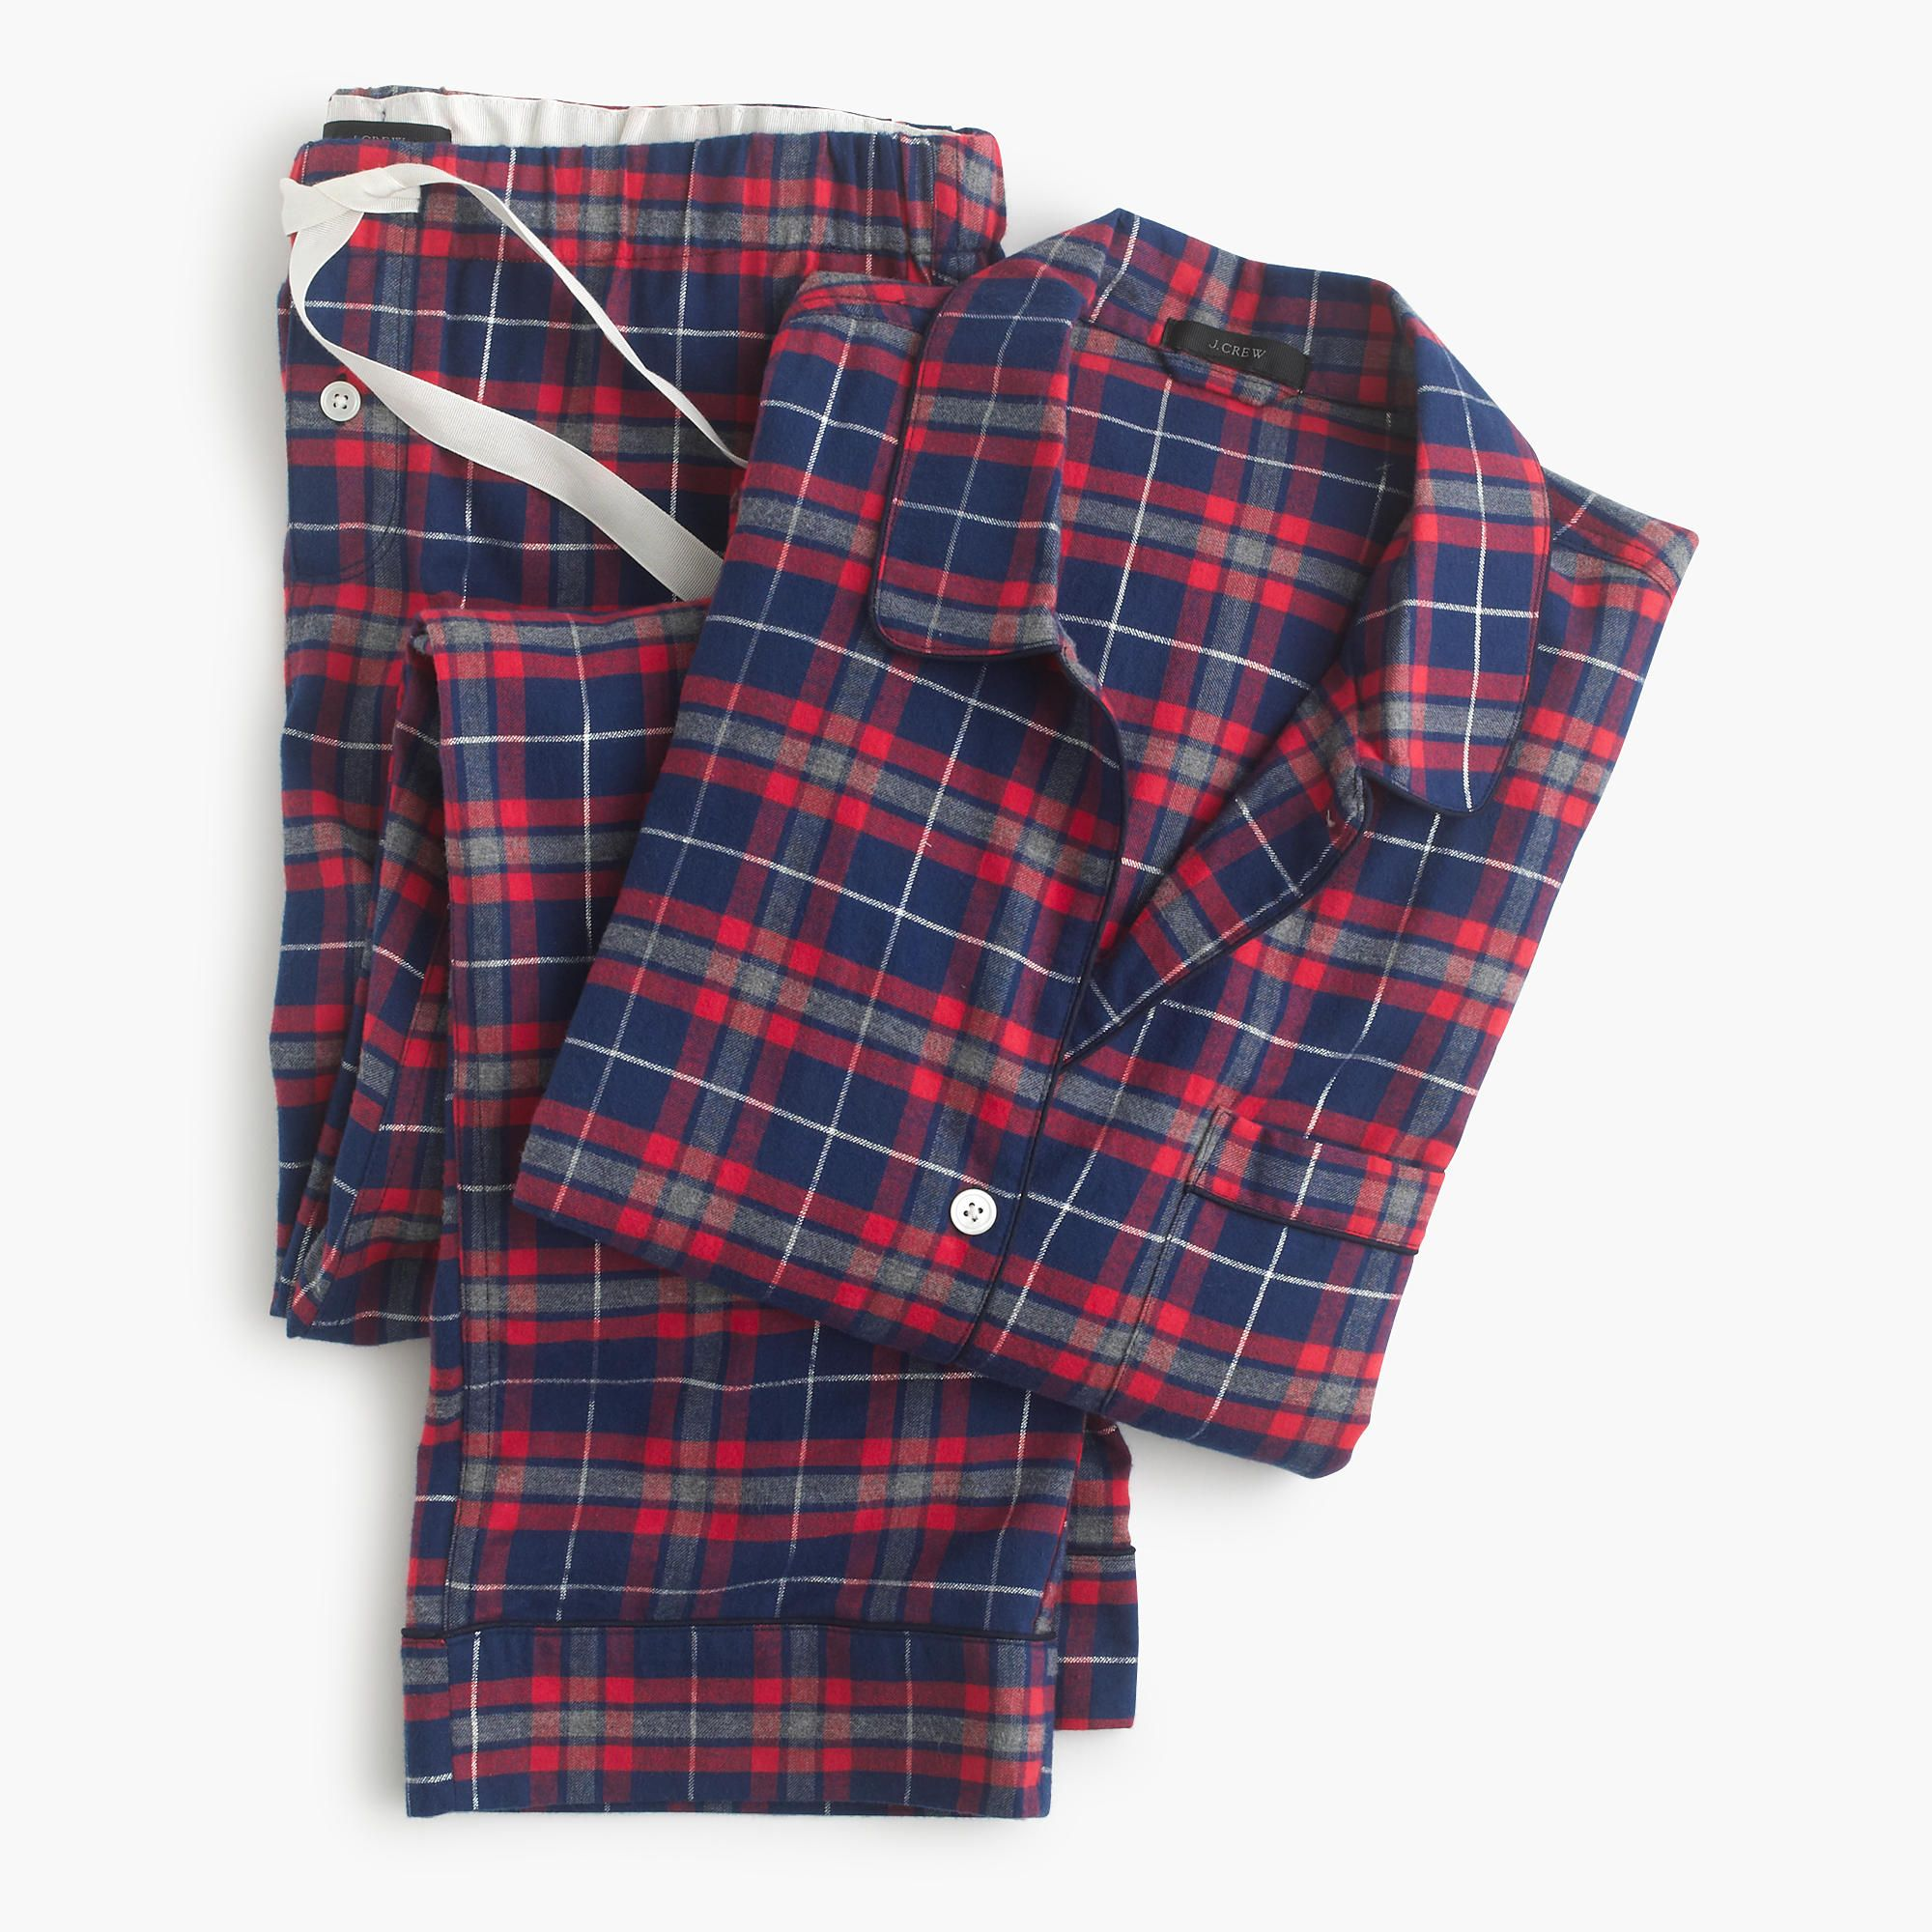 "<p>J.Crew Sparkle Plaid Flannel Pajama Set, $55; <a href=""https://www.jcrew.com/womens_category/sleepwear/PRD~E3823/E3823.jsp?N=17&Nbrd=J&Nloc=en_US&Nrpp=48&Npge=1&Ntrm=pajamas&isSaleItem=true&color_name=HAVEN%20BLUE%20SILVER&isFromSearch=true&isNewSearch=true&hash=row1"">jcrew.com</a><a href=""https://www.jcrew.com/womens_category/sleepwear/PRD~E3823/E3823.jsp?N=17&Nbrd=J&Nloc=en_US&Nrpp=48&Npge=1&Ntrm=pajamas&isSaleItem=true&color_name=HAVEN%20BLUE%20SILVER&isFromSearch=true&isNewSearch=true&hash=row1""></a></p><p><strong>How soon can I get them?</strong> For $25, you can receive them in one to two business days.<span class=""redactor-invisible-space""><br></span></p>"